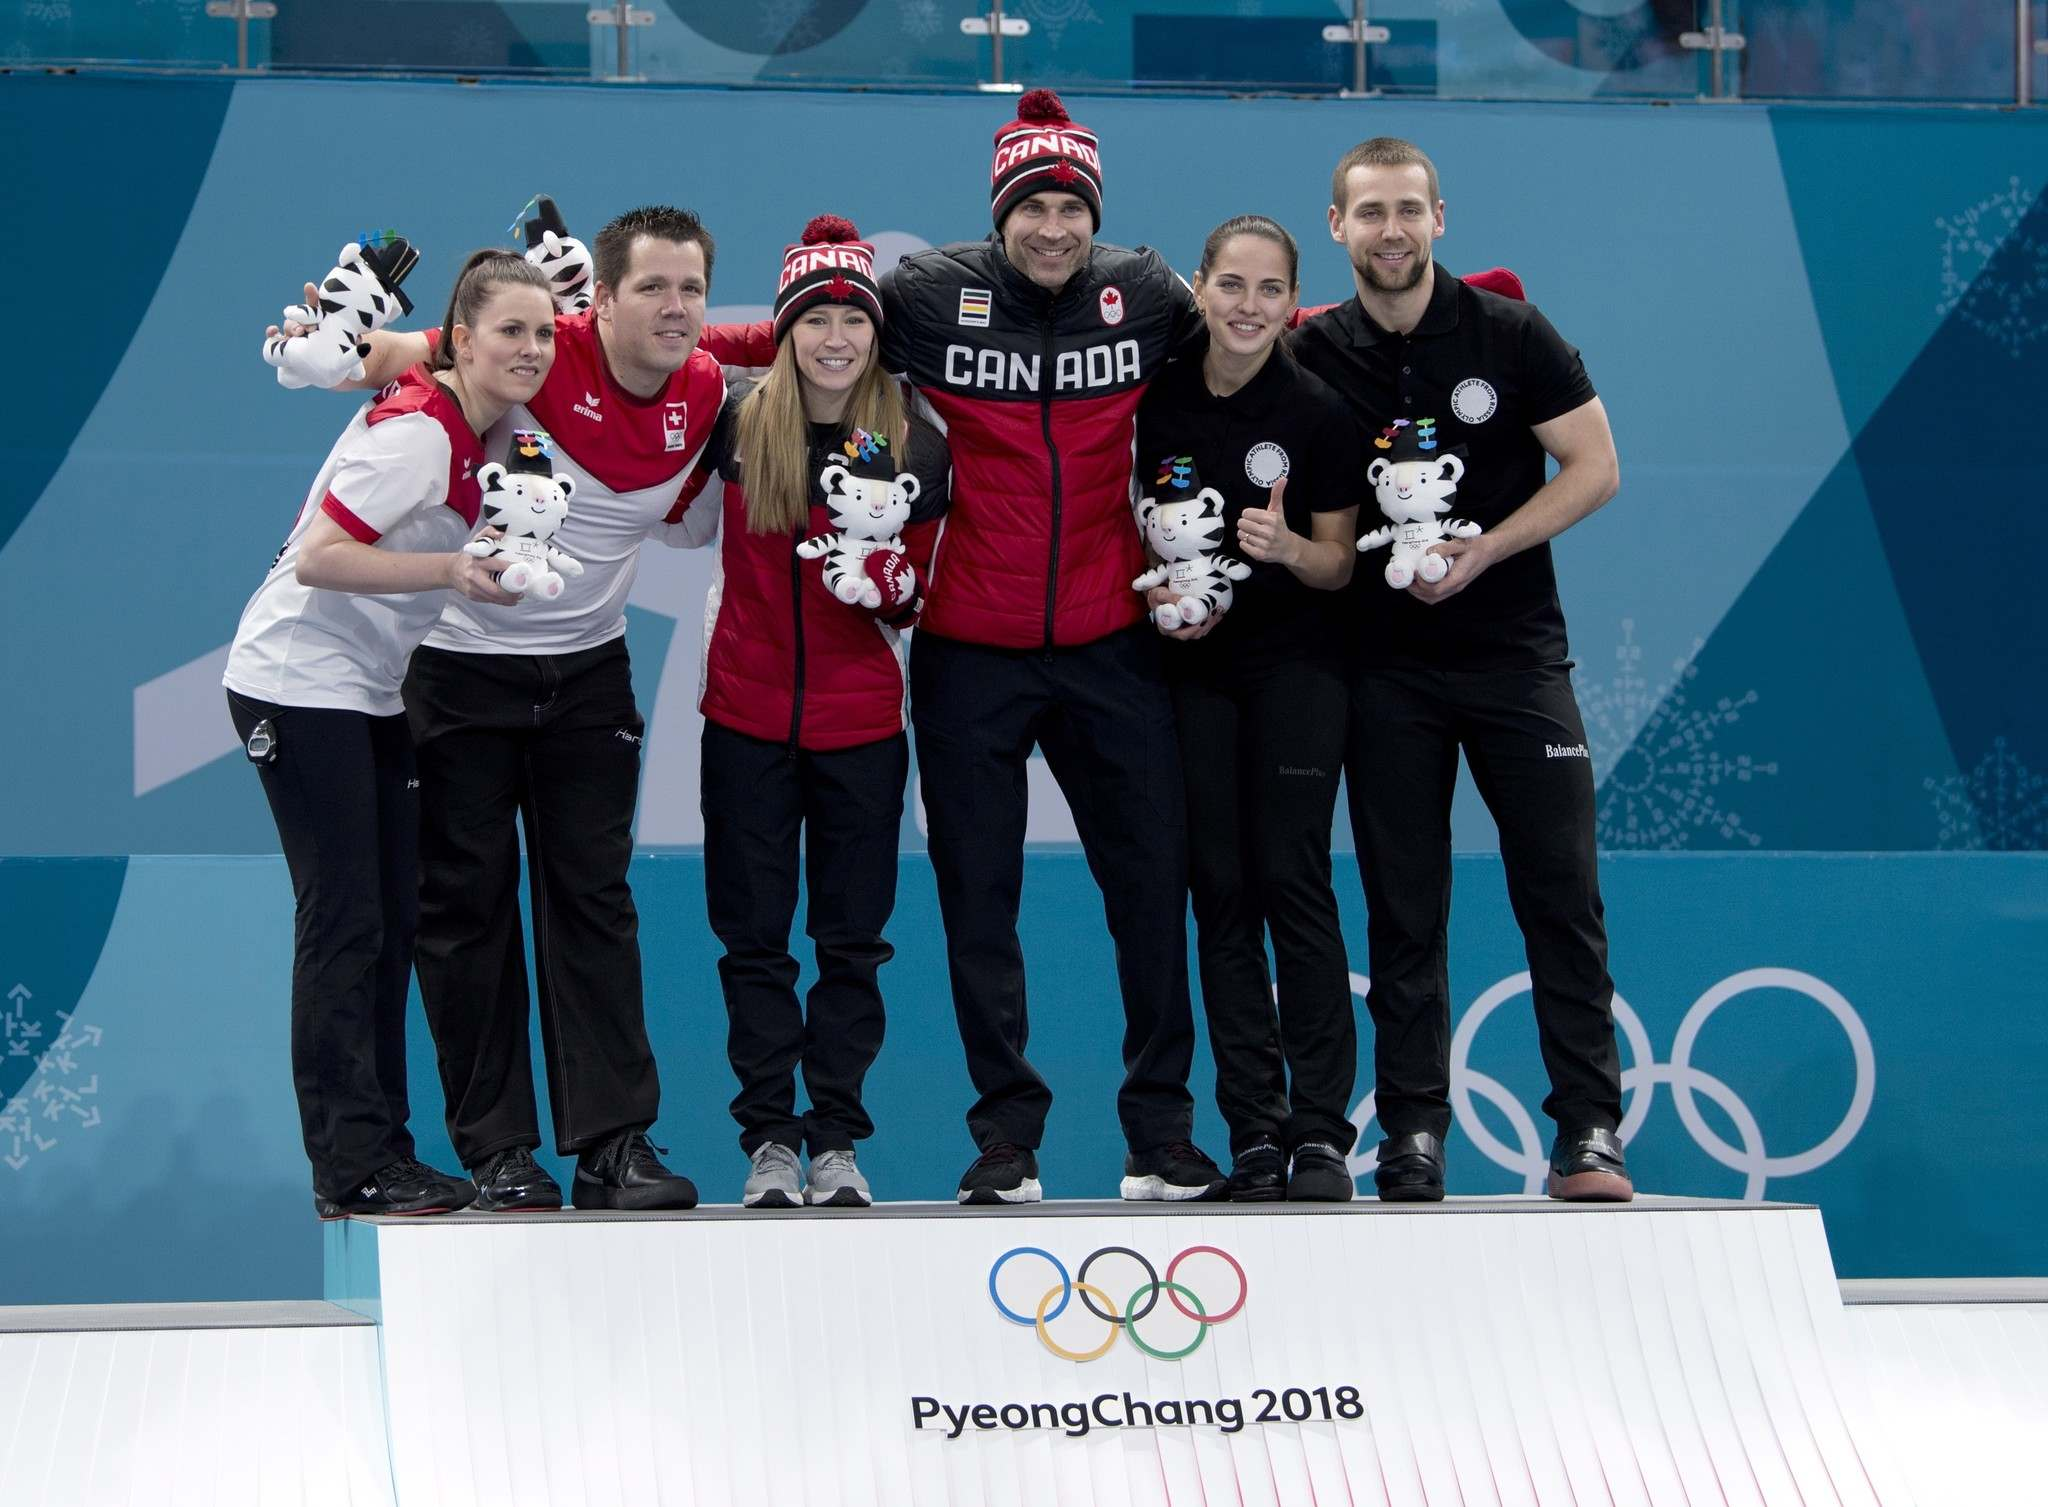 Mixed doubles gold medal winners Canadians Kaitlyn Lawes and John Morris, centre, silver medal winners , Jenny Perret and Martin Rios, of Switzerland, left, and bronze medal Anastasia Bryzgalova and Alexandr Krushelnitckii, of Russia, celebrate at the 2018 Olympic Winter Games in Gangneung, South Korea on Tuesday, February 13, 2018. (Michael Burns / The Canadian Press)</p>